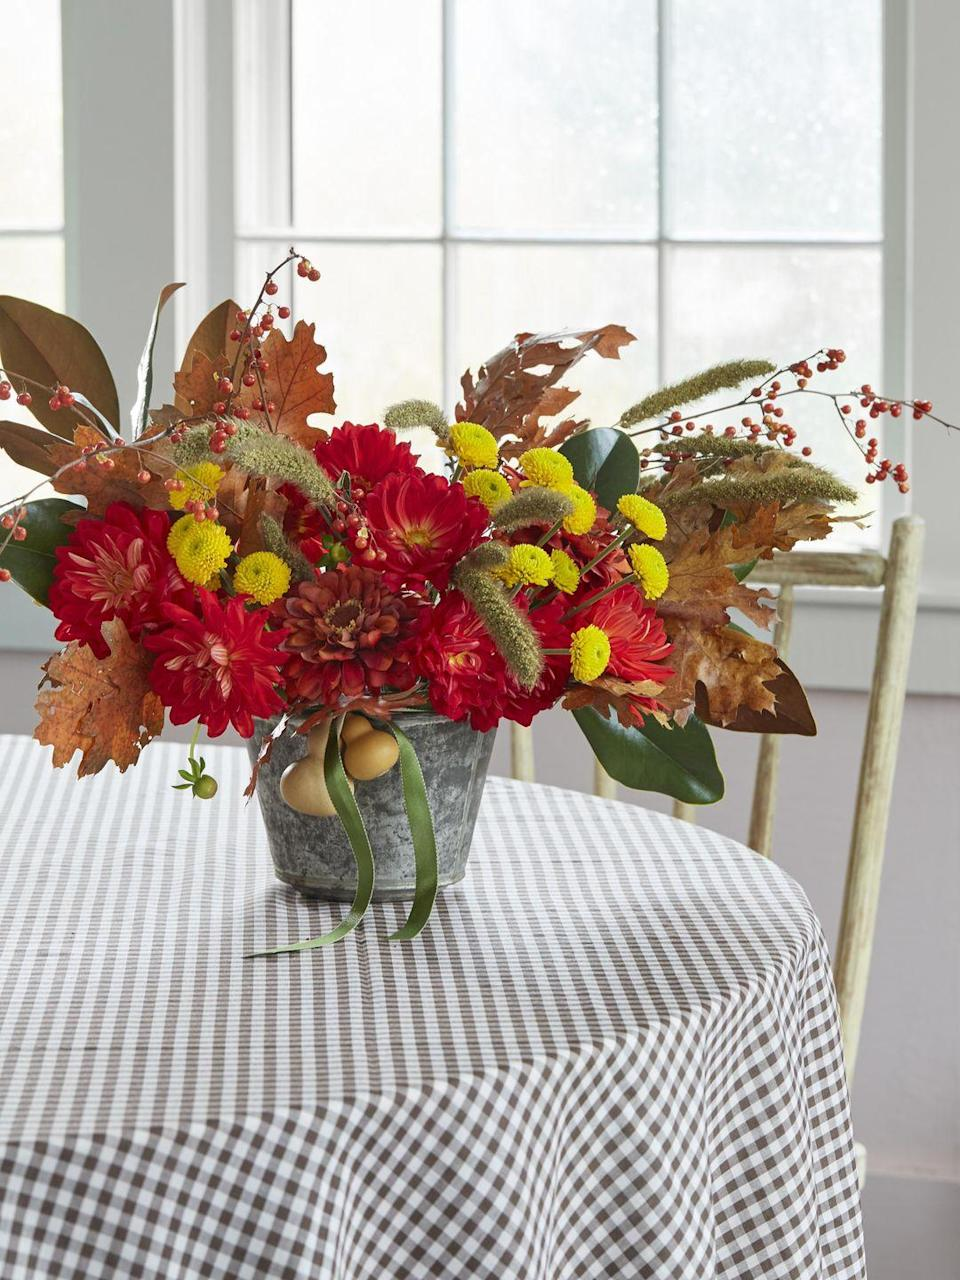 <p>Go for bold red and yellow blooms instead of the usual muted fall tones. In a vintage pudding tin or other favorite vessel, add flowers first, then mix in fall leaves, berries, magnolia leaves. Pro tip: Start with more stiff/branchy pieces to make a strong base, then move to softer, delicate materials. Finish it off with a ribbon tied with dried gourds.</p>